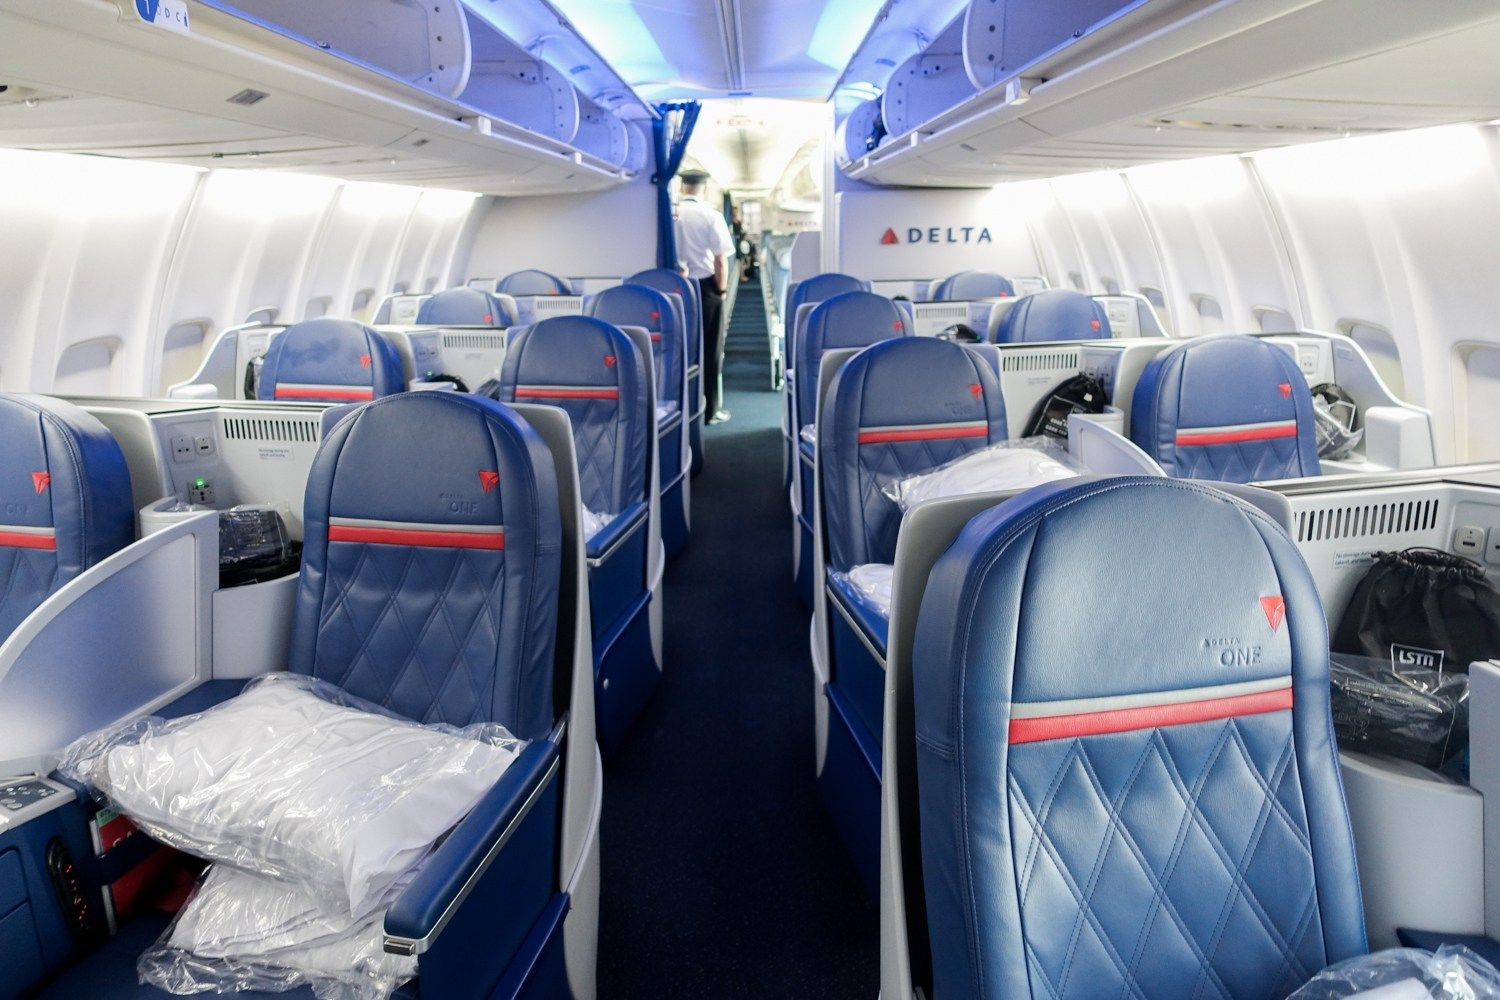 Every delta air lines premium seat ranked best to worst in